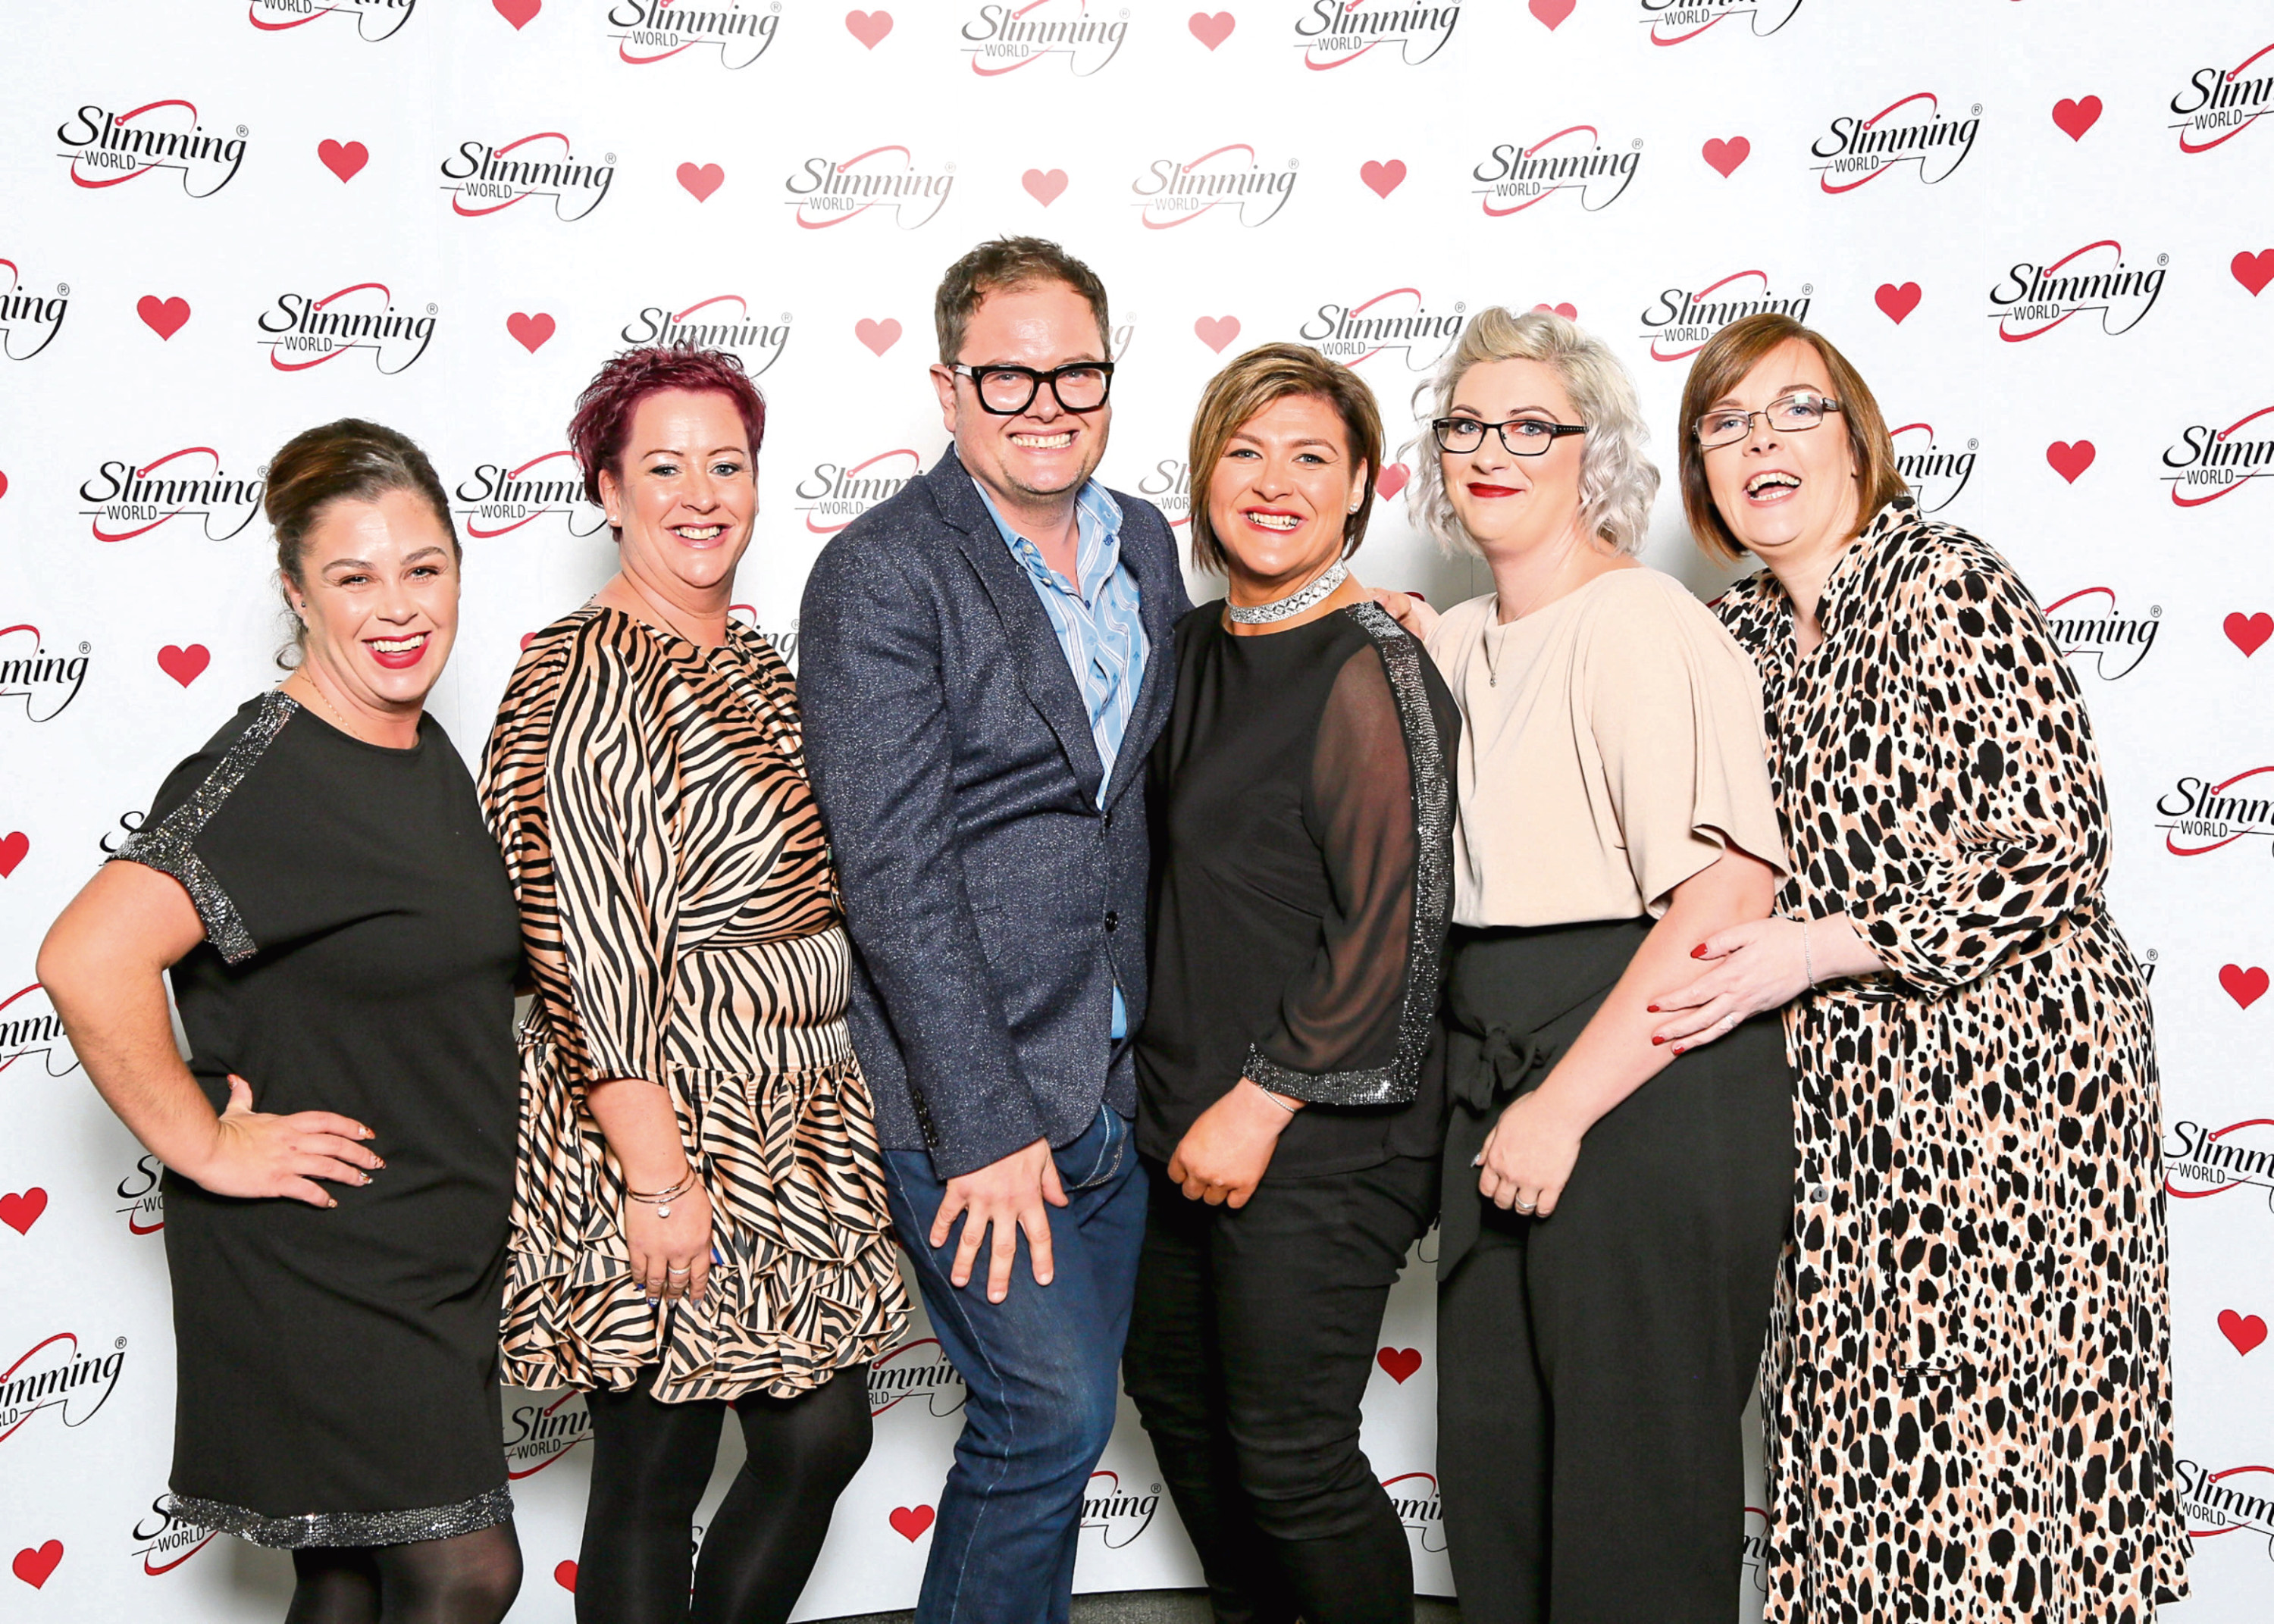 Alan Carr pictured with some of the Slimming World team